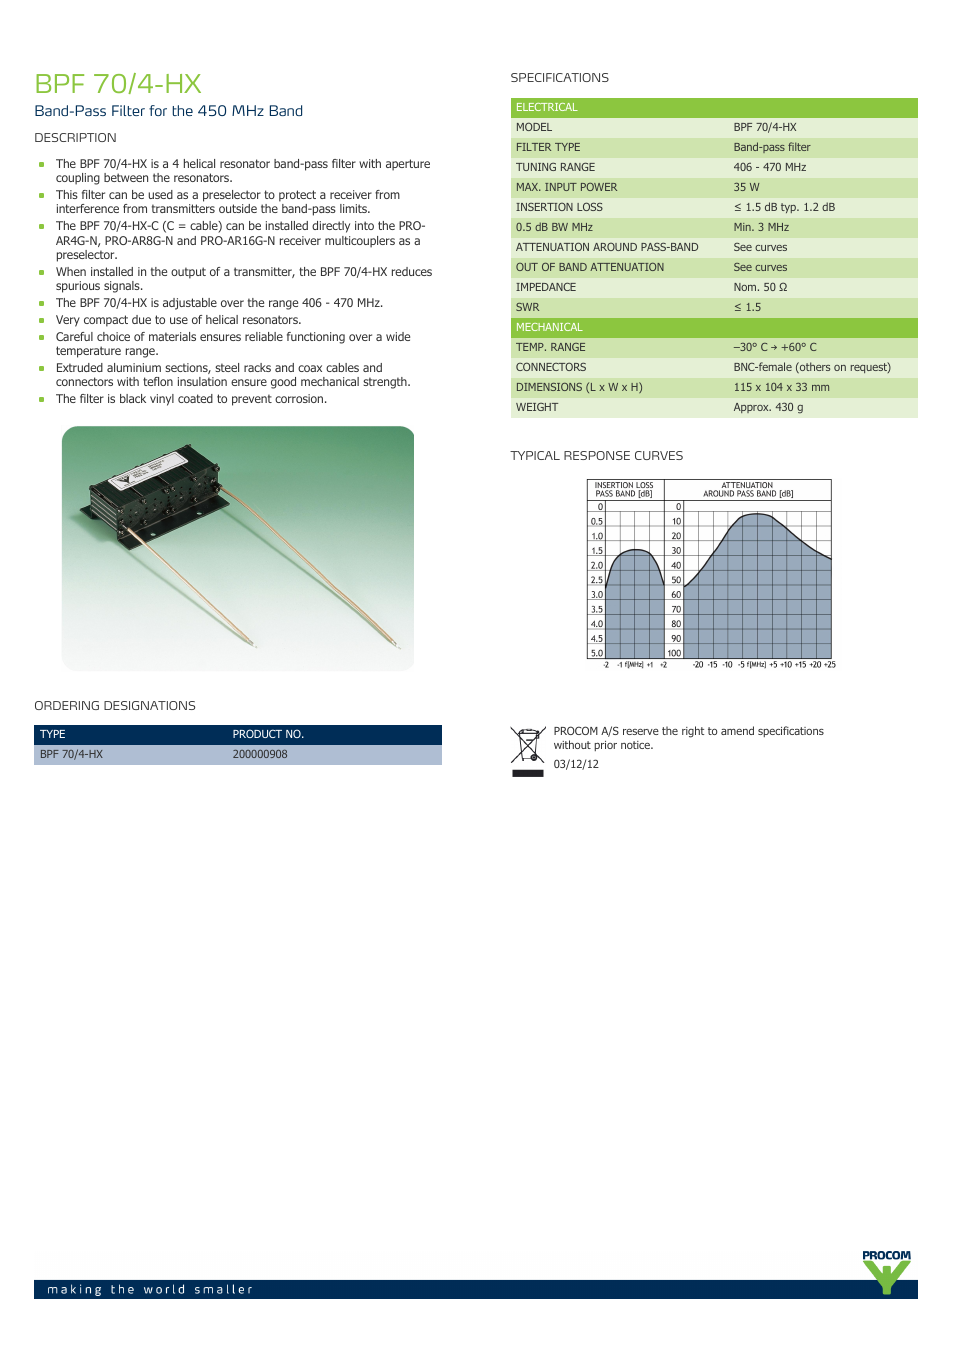 Procom BPF 70-4-hx User Manual | 1 page